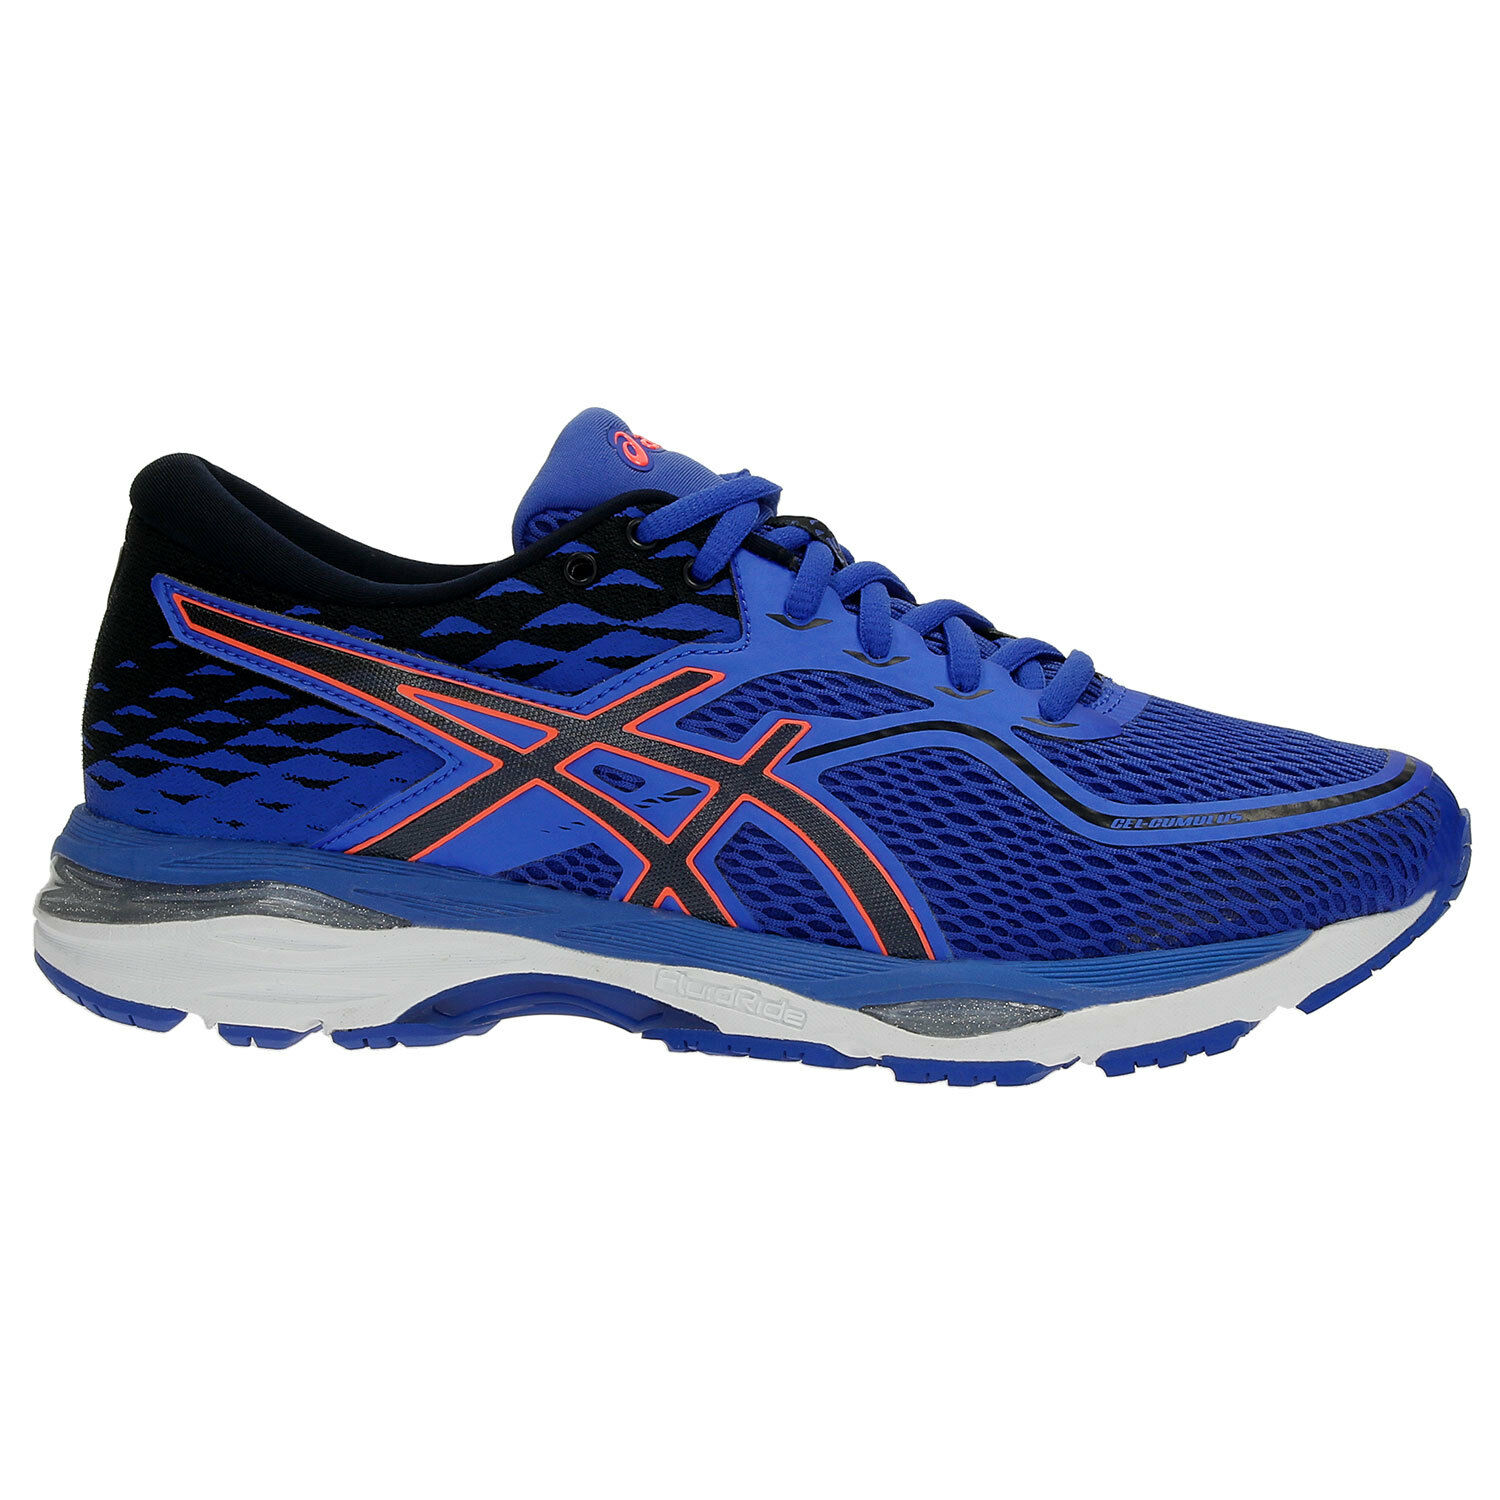 NEW Asics Gel Cumulus 19 Womens Running shoes (D) (4890)